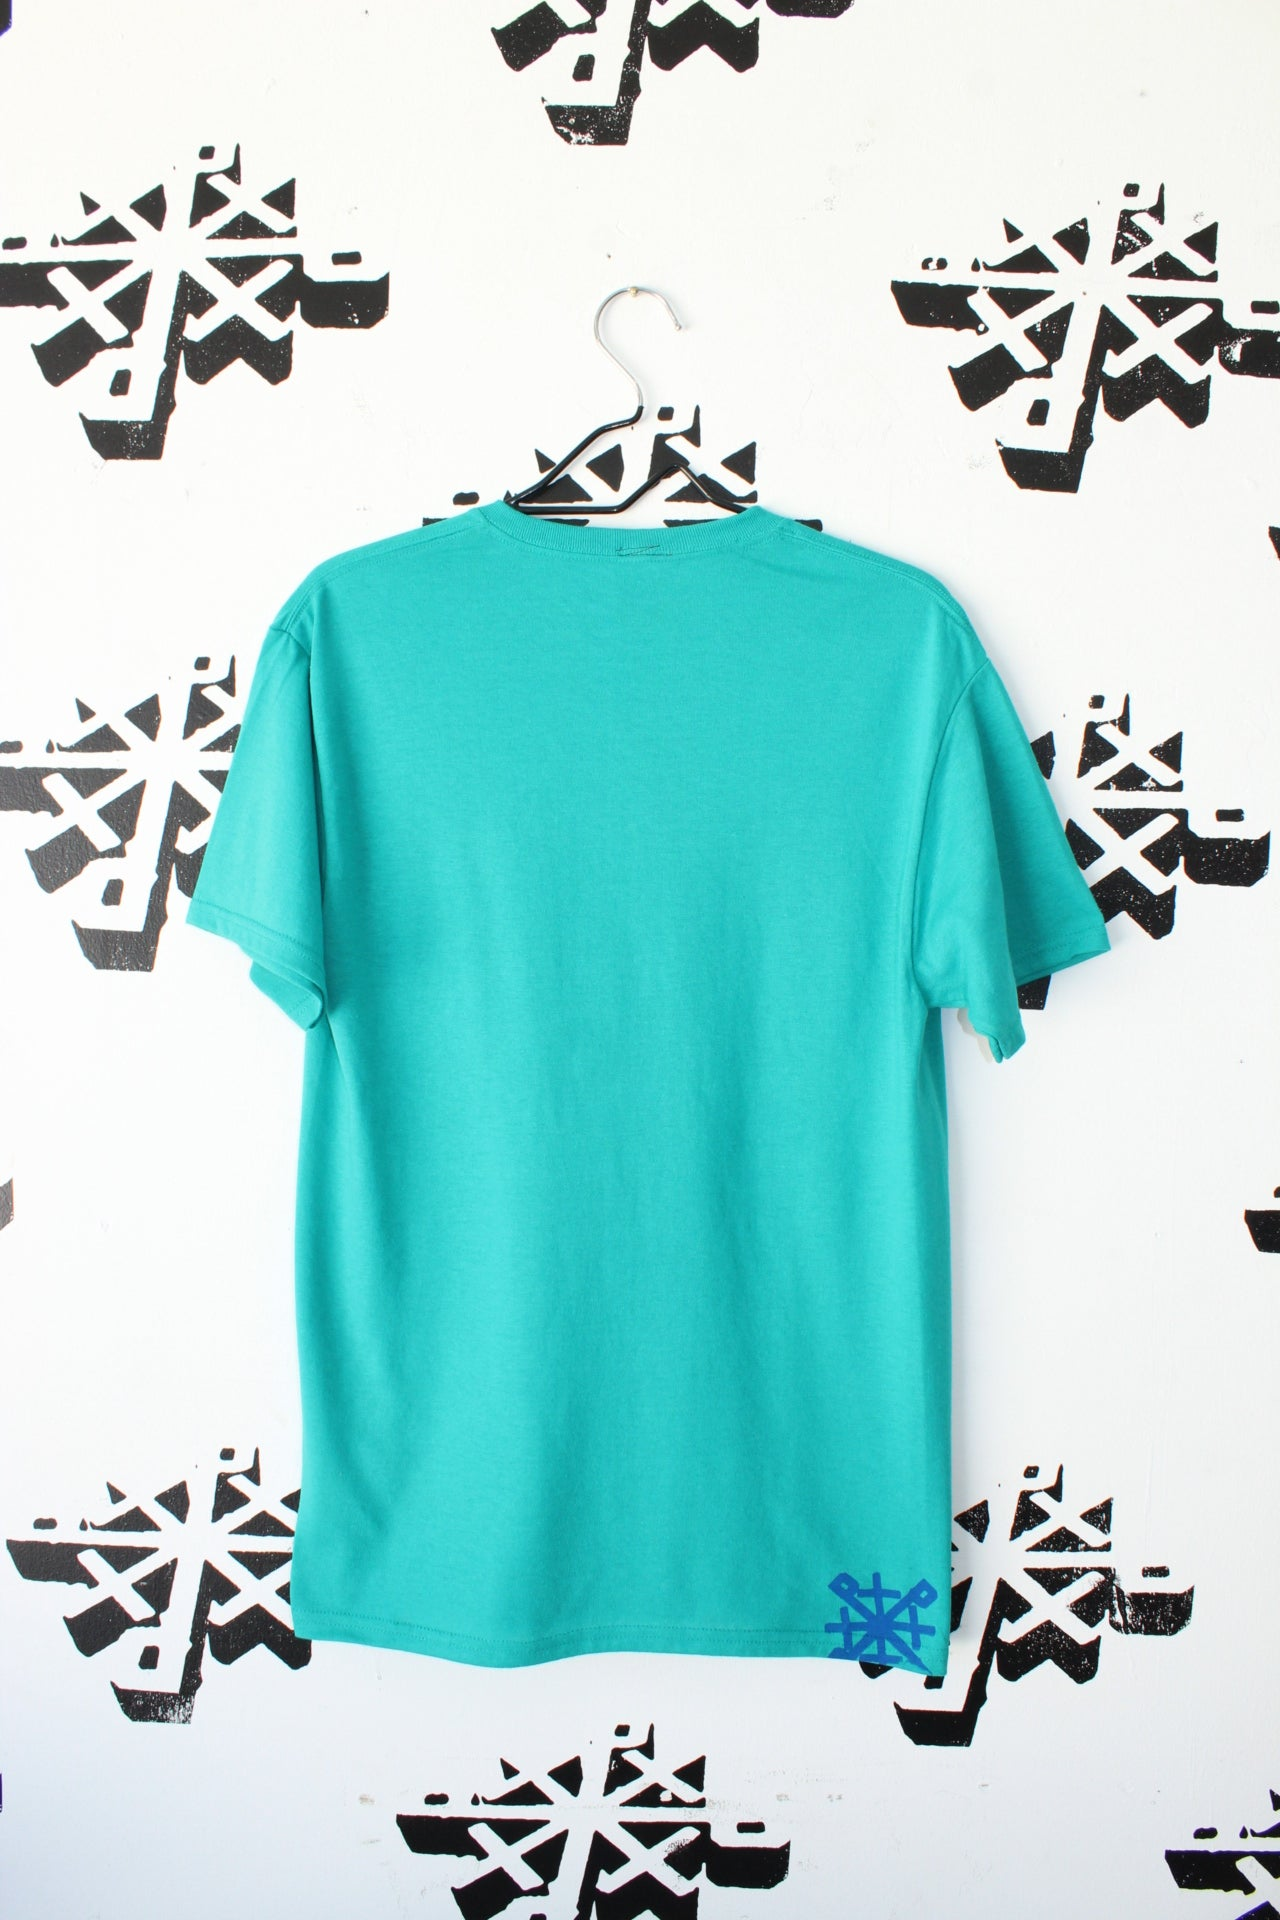 Image of keeping you cool tee in teal